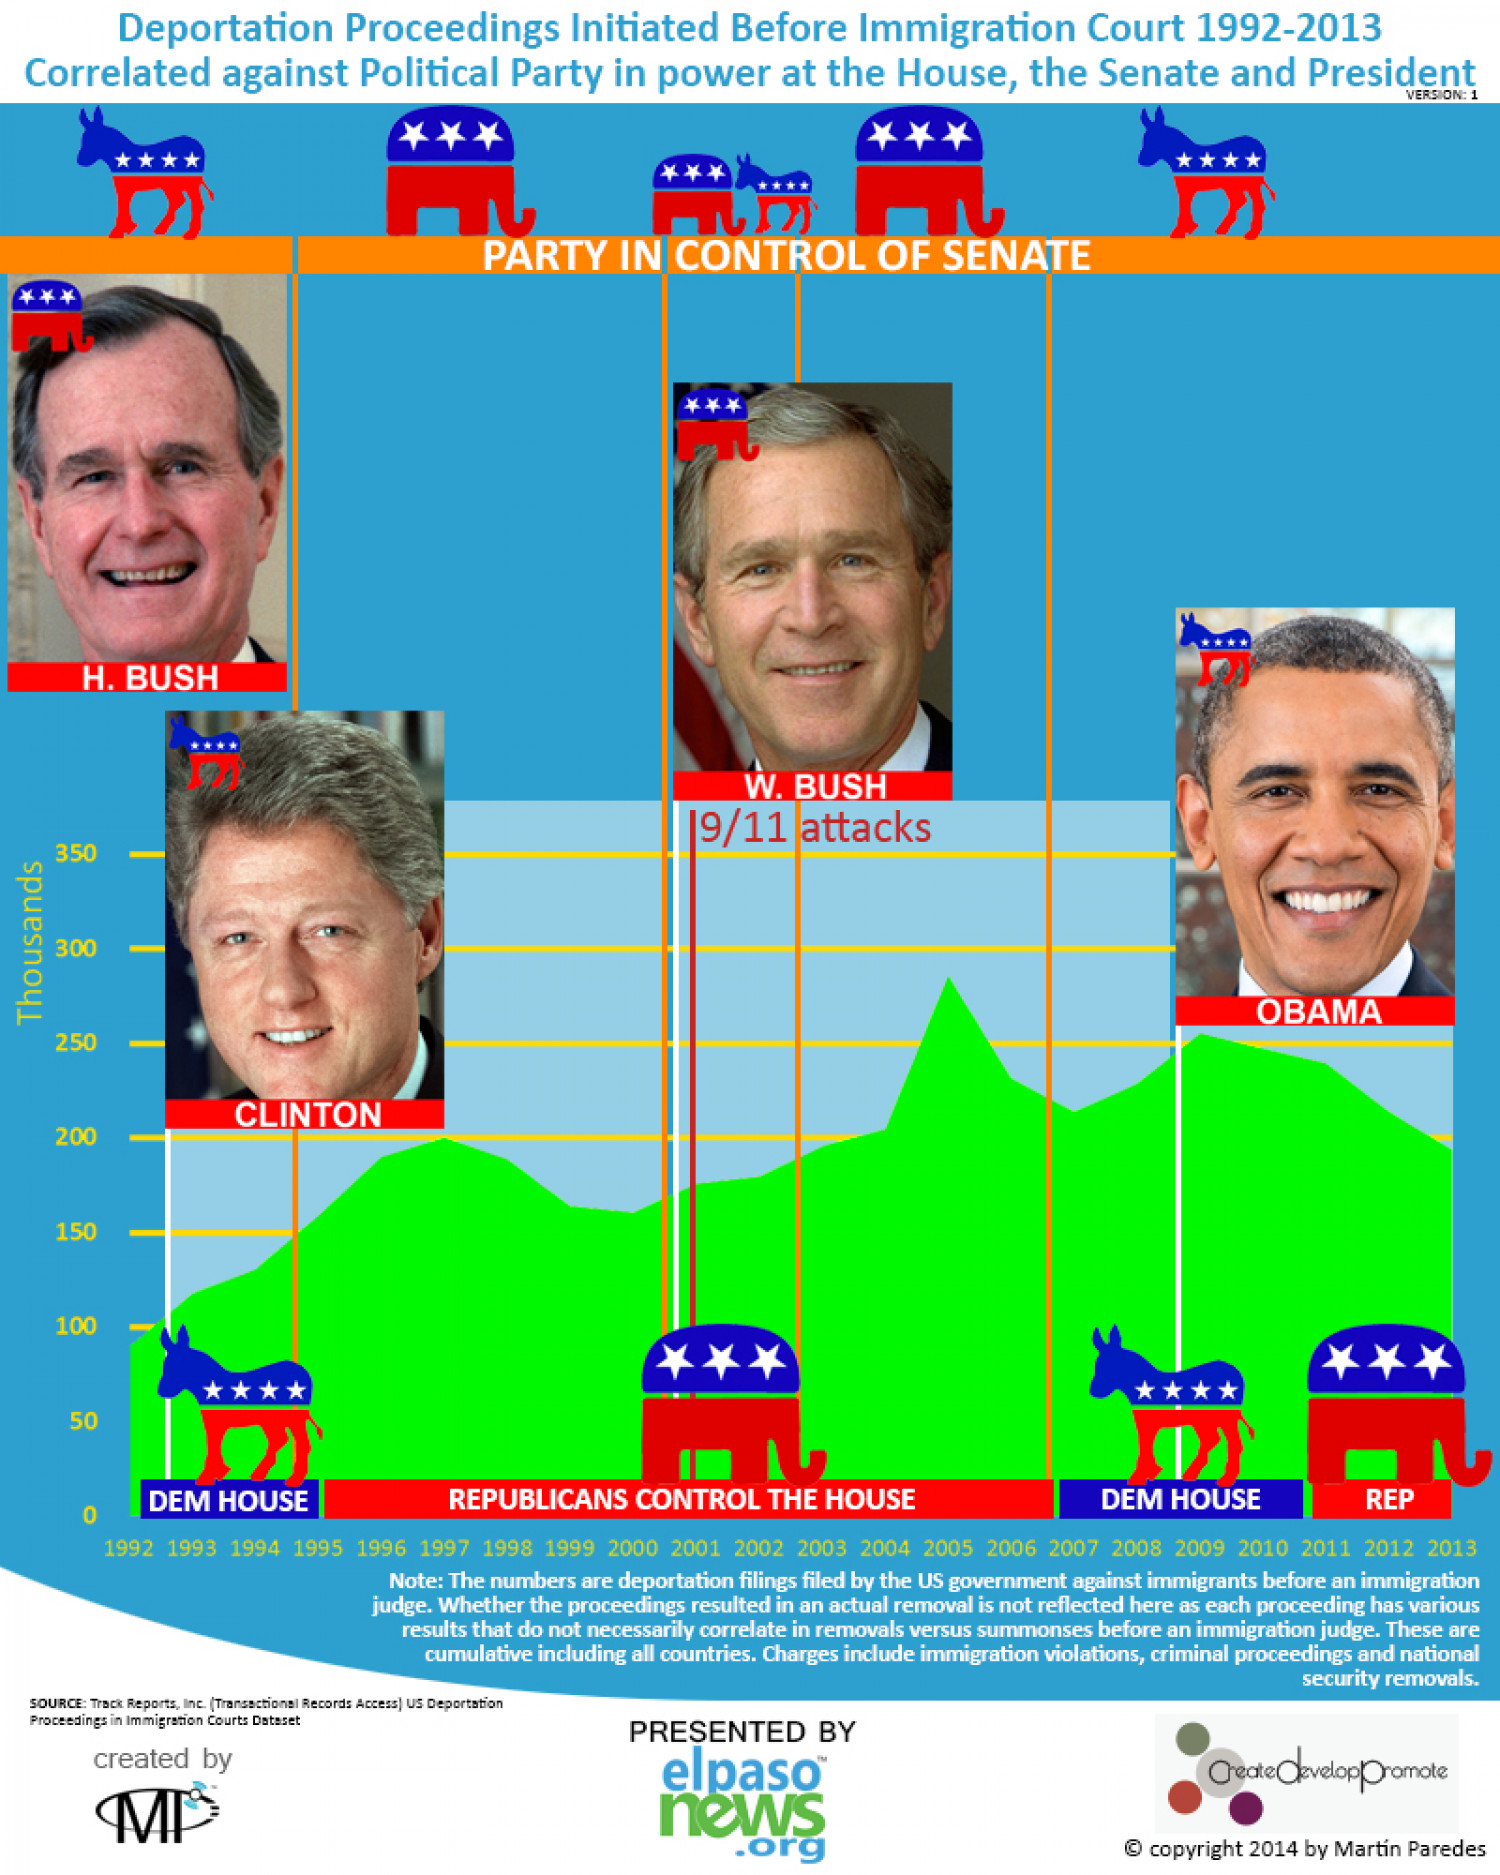 Deportations Correlated Against Politcal Parties Infographic